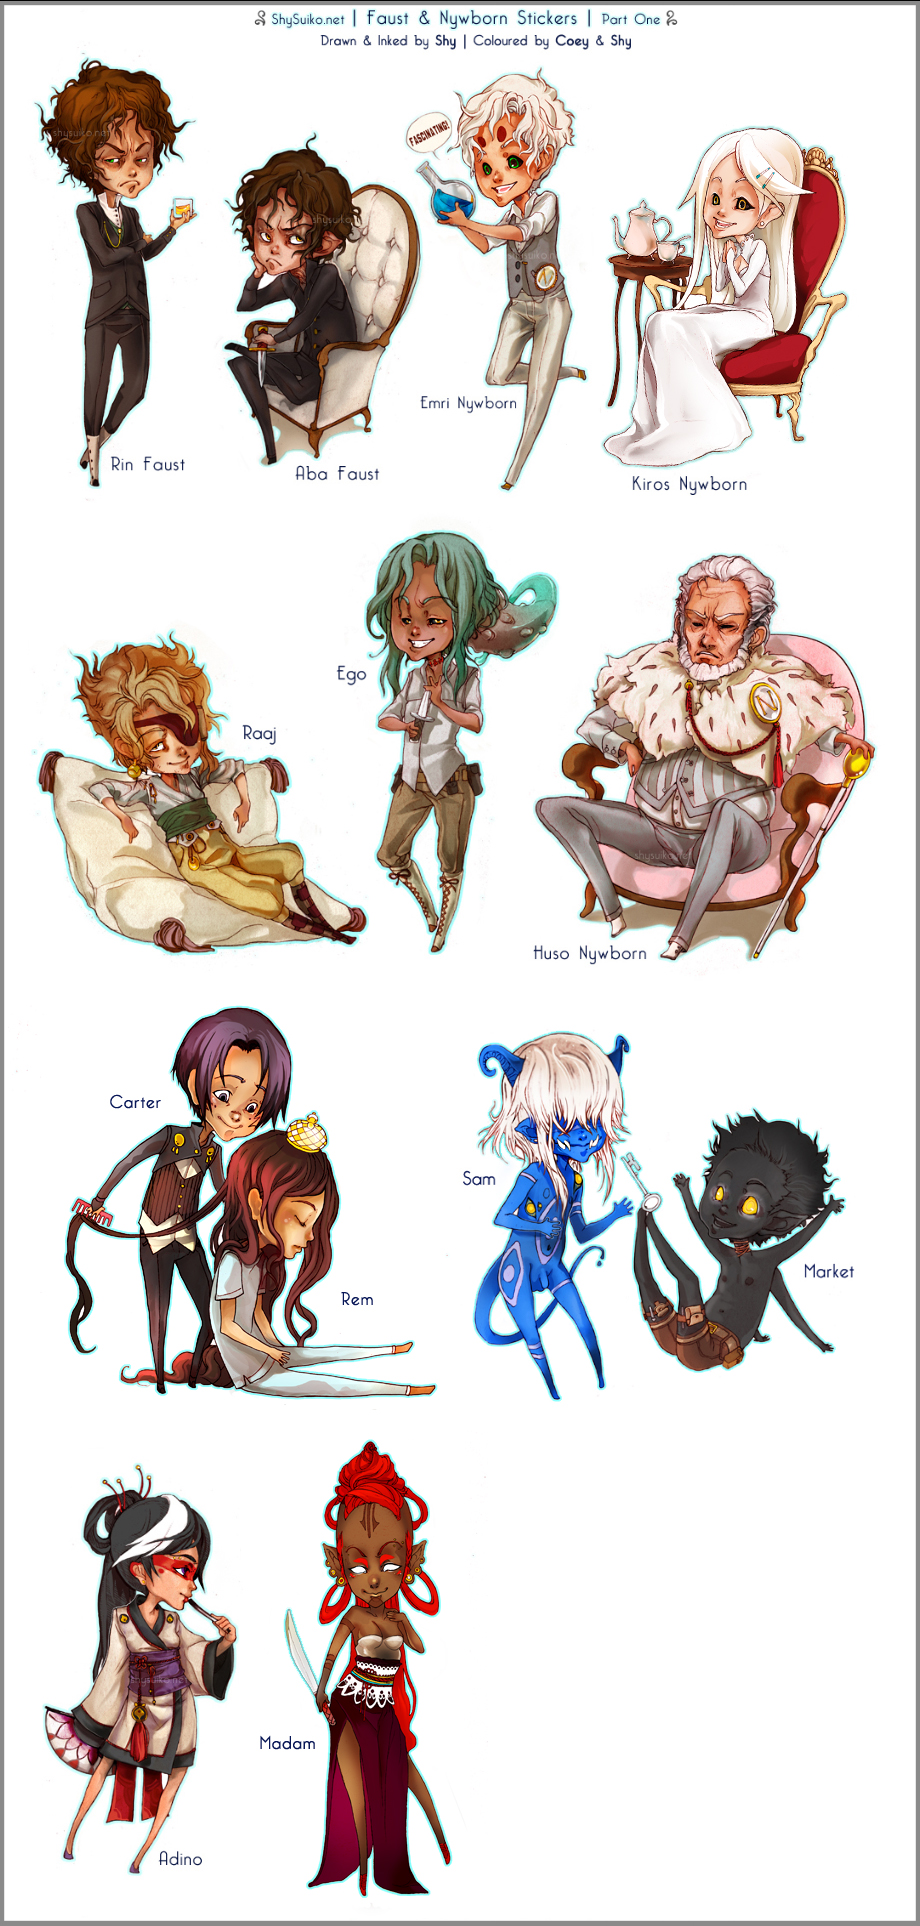 All characters copyright both Coey and Shy unless stated otherwise.